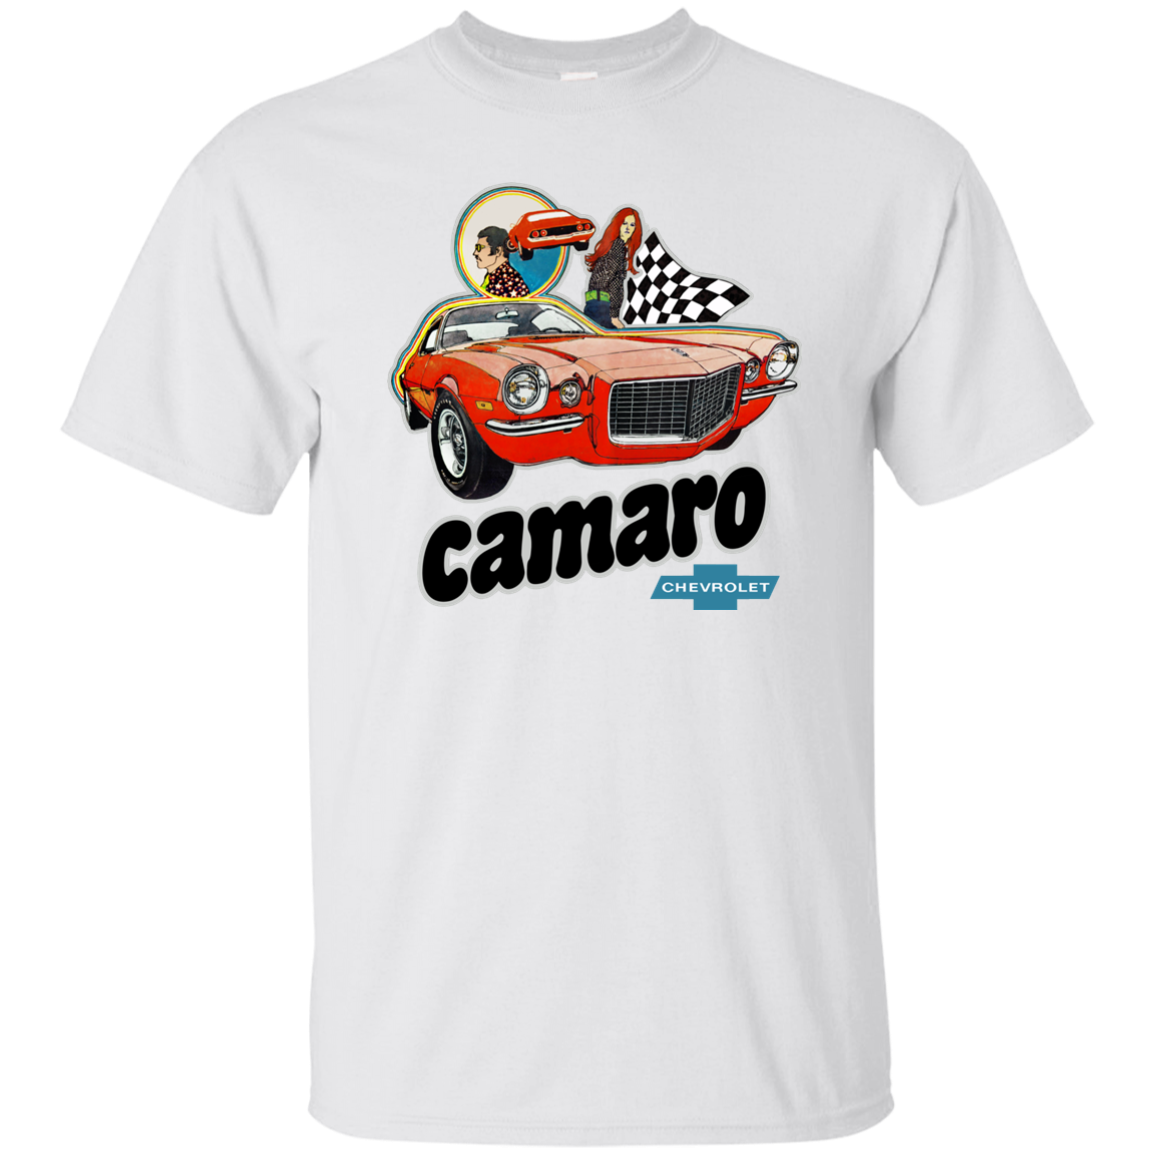 Chevy Camaro Chevrolet Heavy Chevy Muscle Car Retro 1960'S 1970'S T Shirt Harajuku Tops Fashion Classic Unique